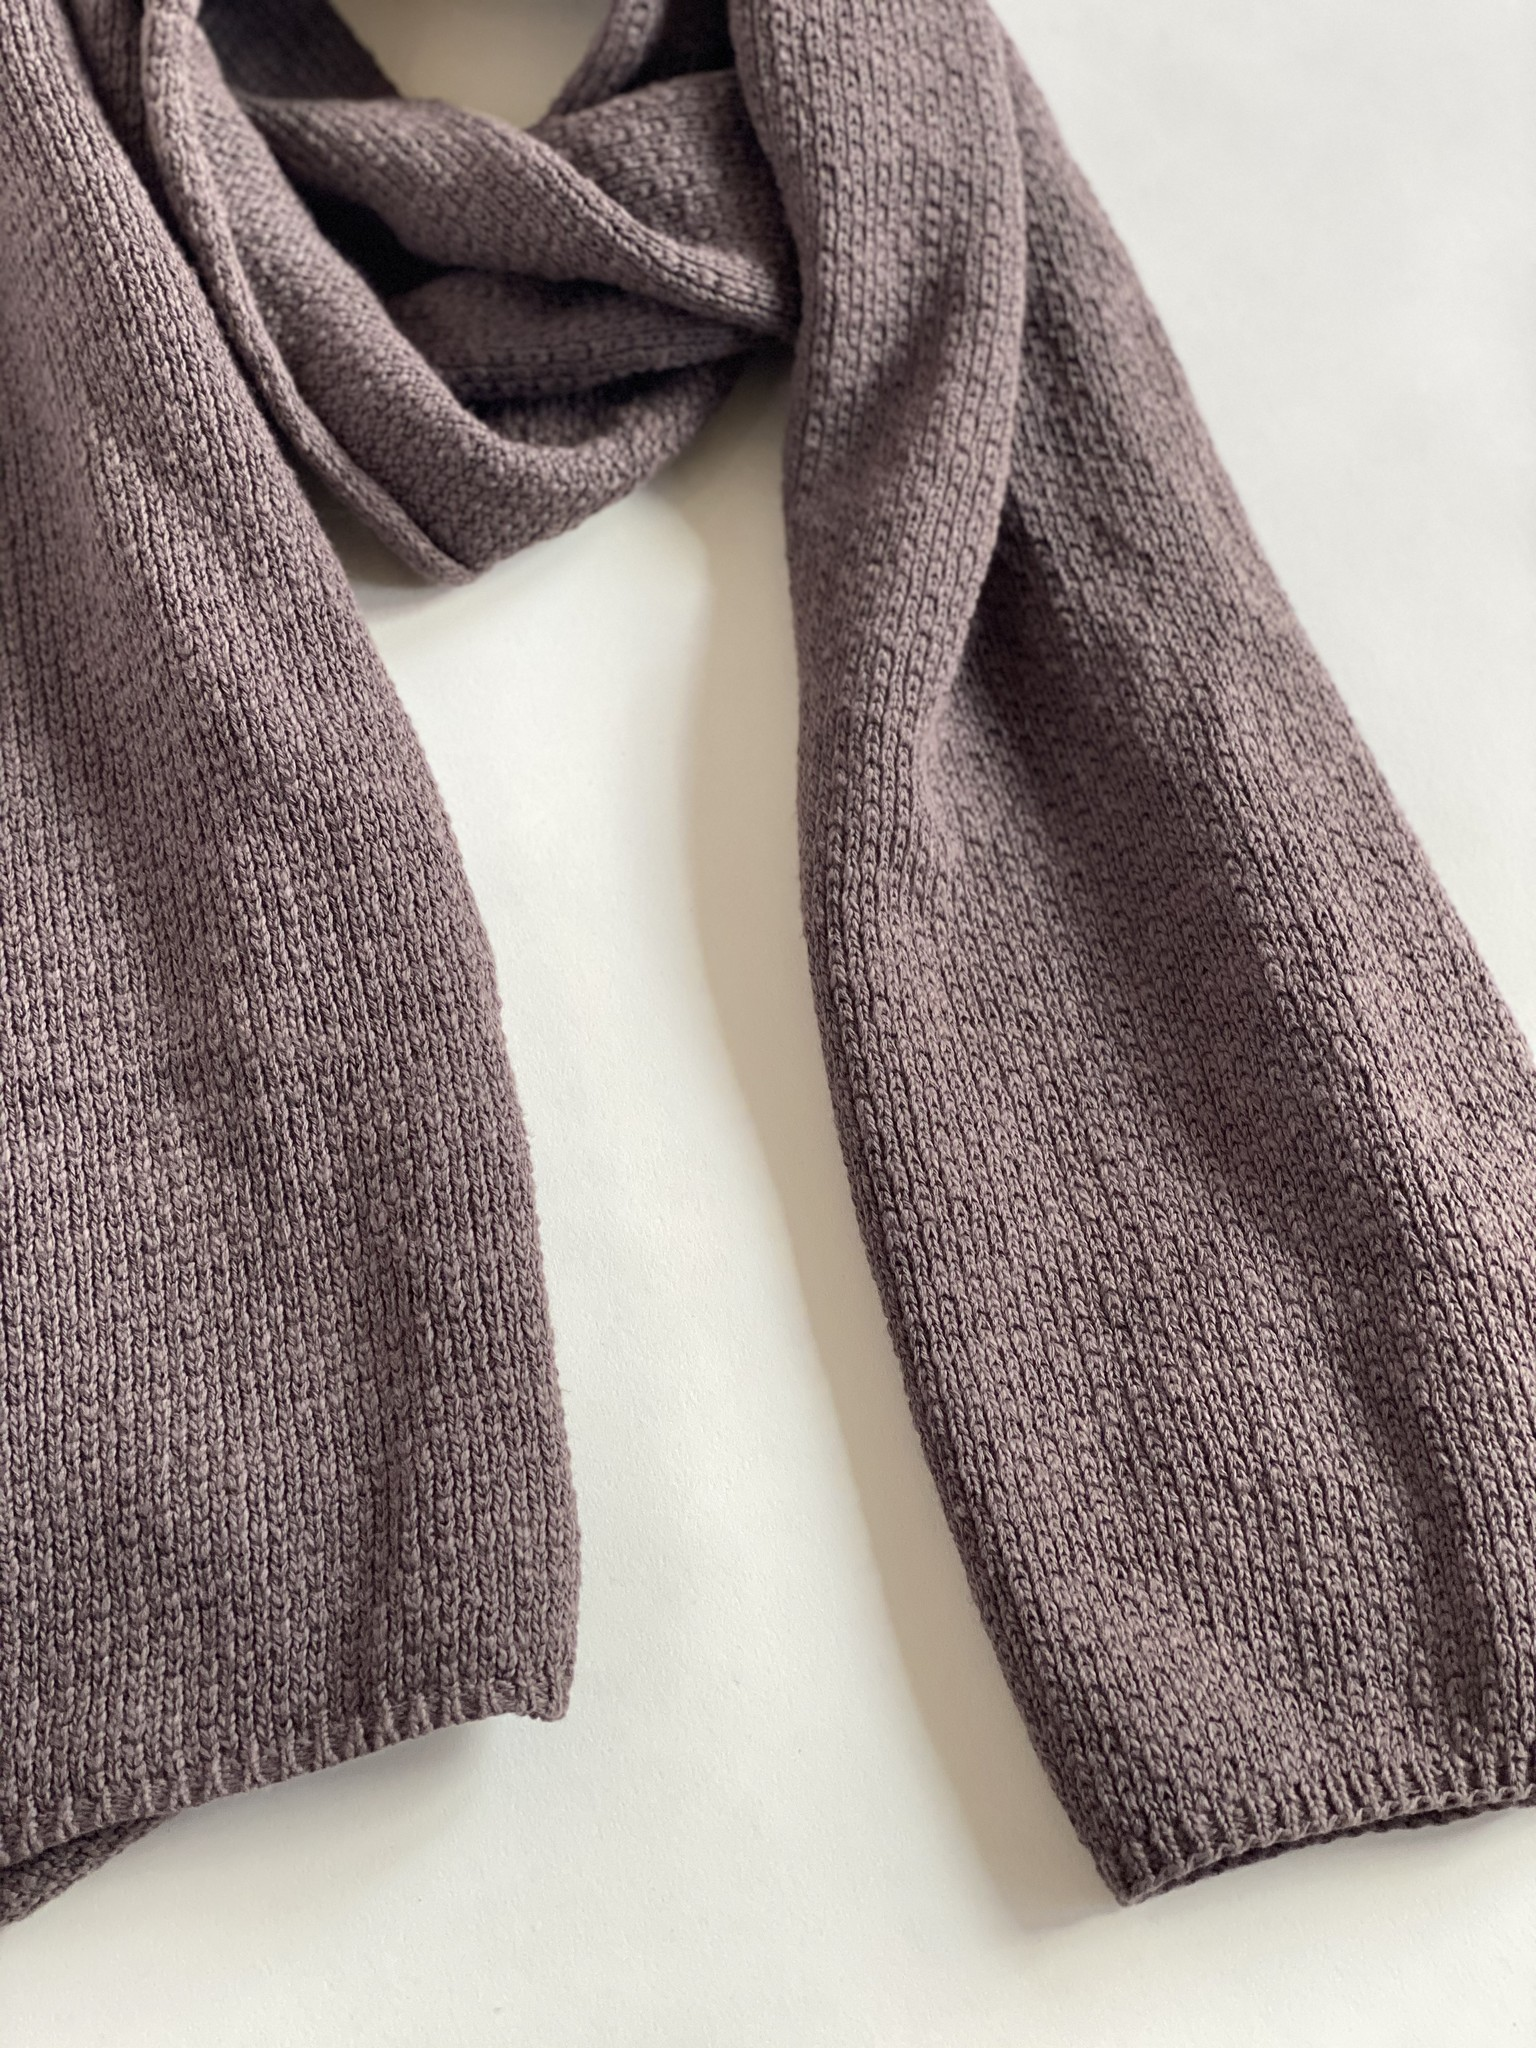 It is Well LA Flower Stitch Knit Scarf